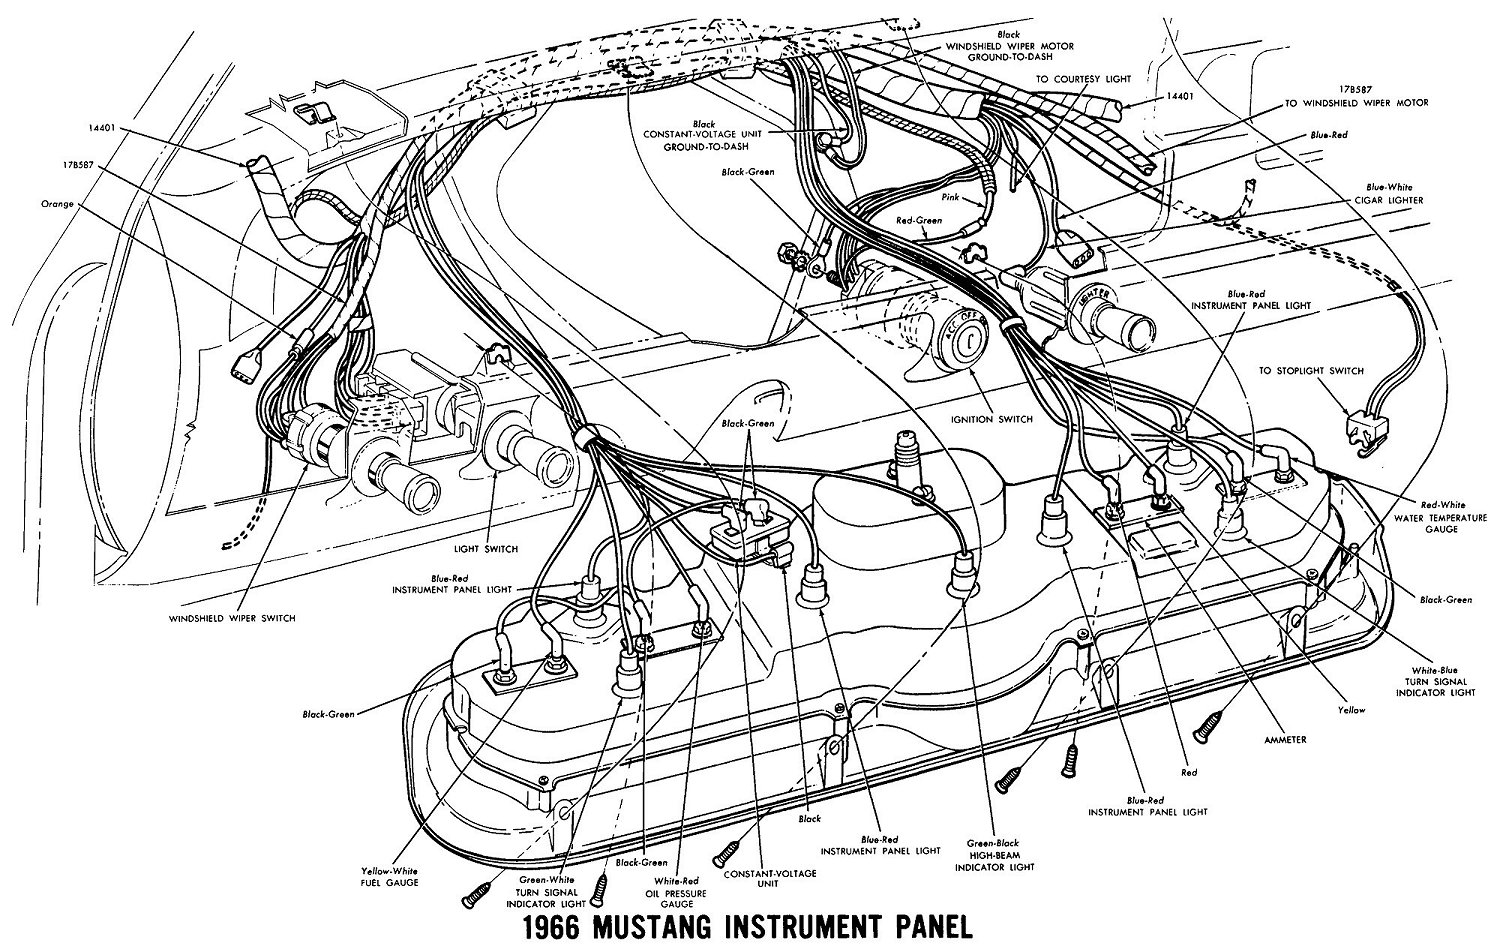 66instr 1966 mustang wiring diagrams average joe restoration 1965 Mustang Restoration Guide at gsmx.co